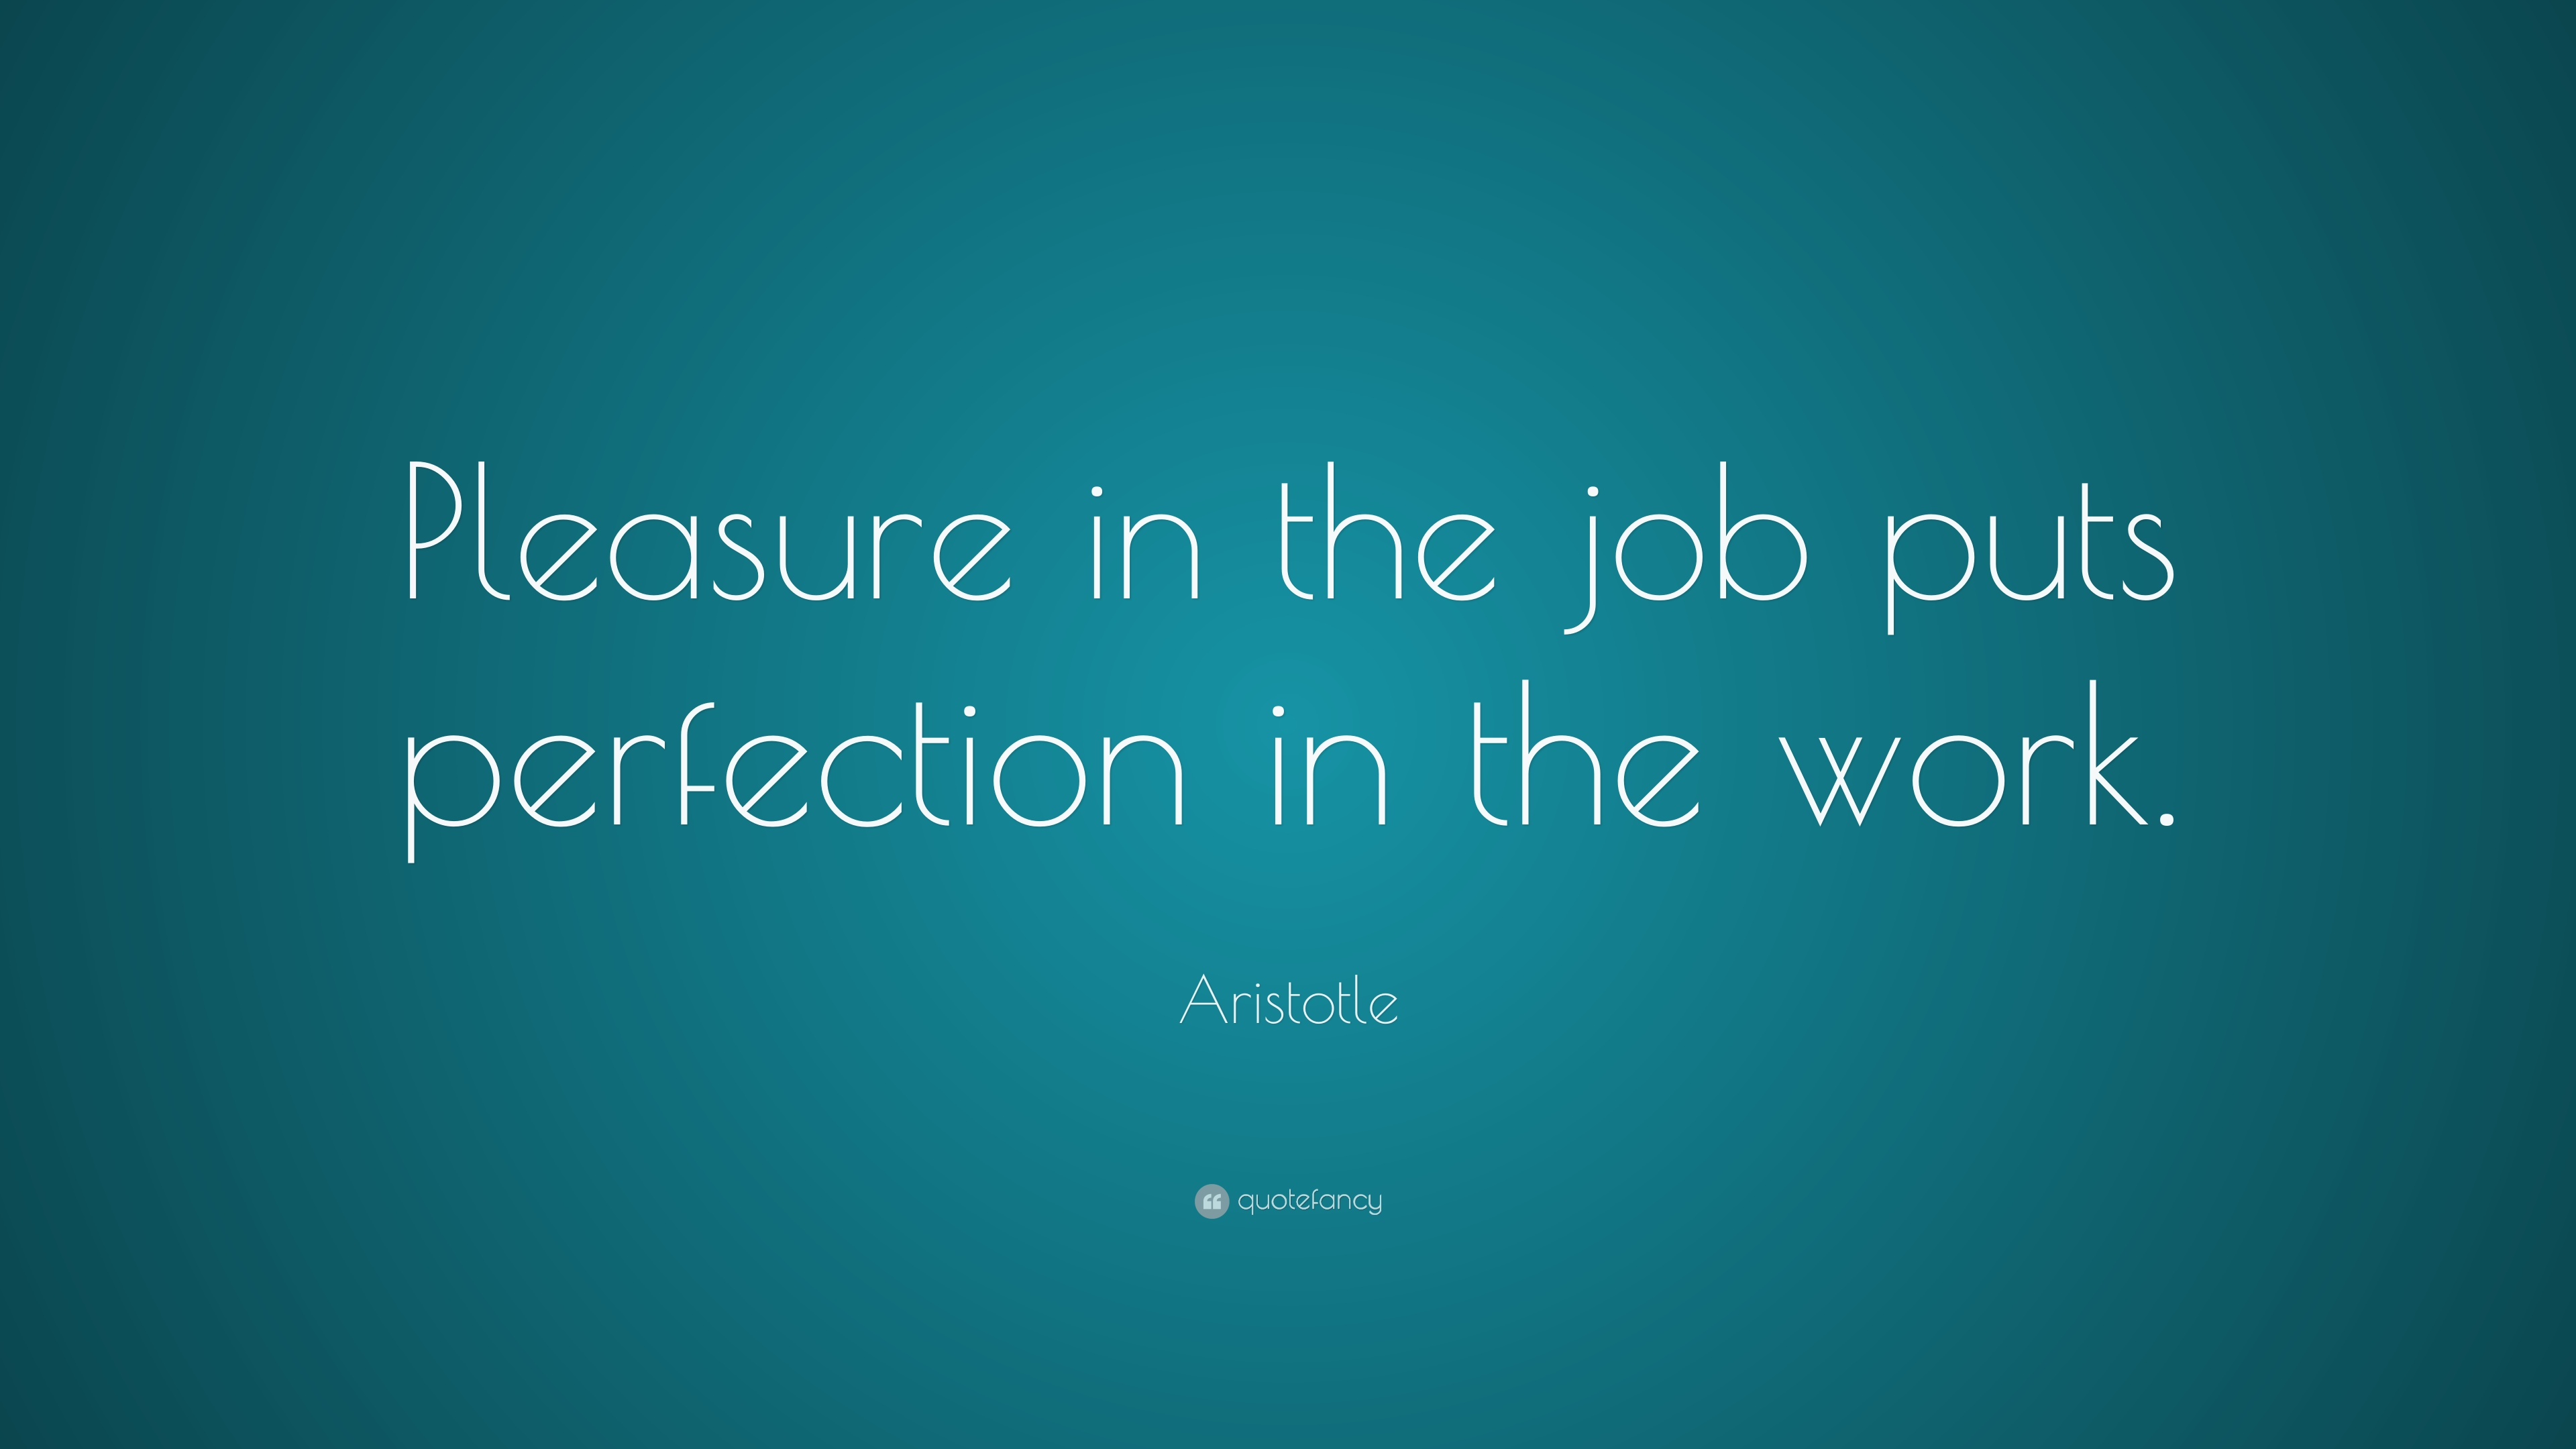 Aristotle Quote Pleasure In The Job Puts Perfection In The Work 4 Wallpapers Quotefancy